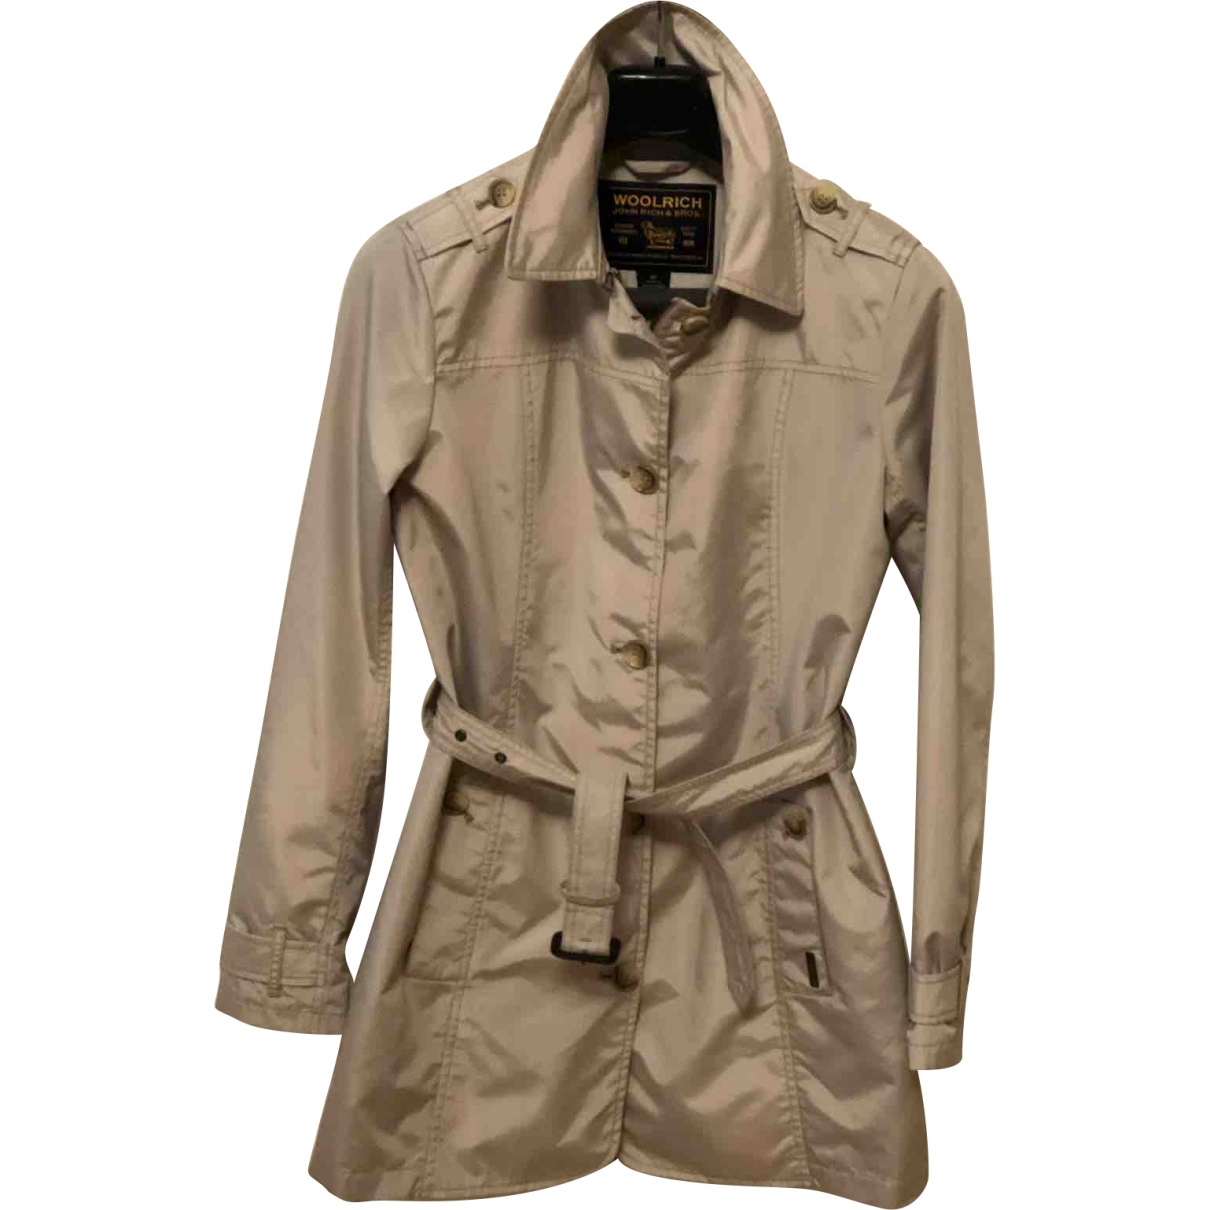 Woolrich \N Beige coat for Women M